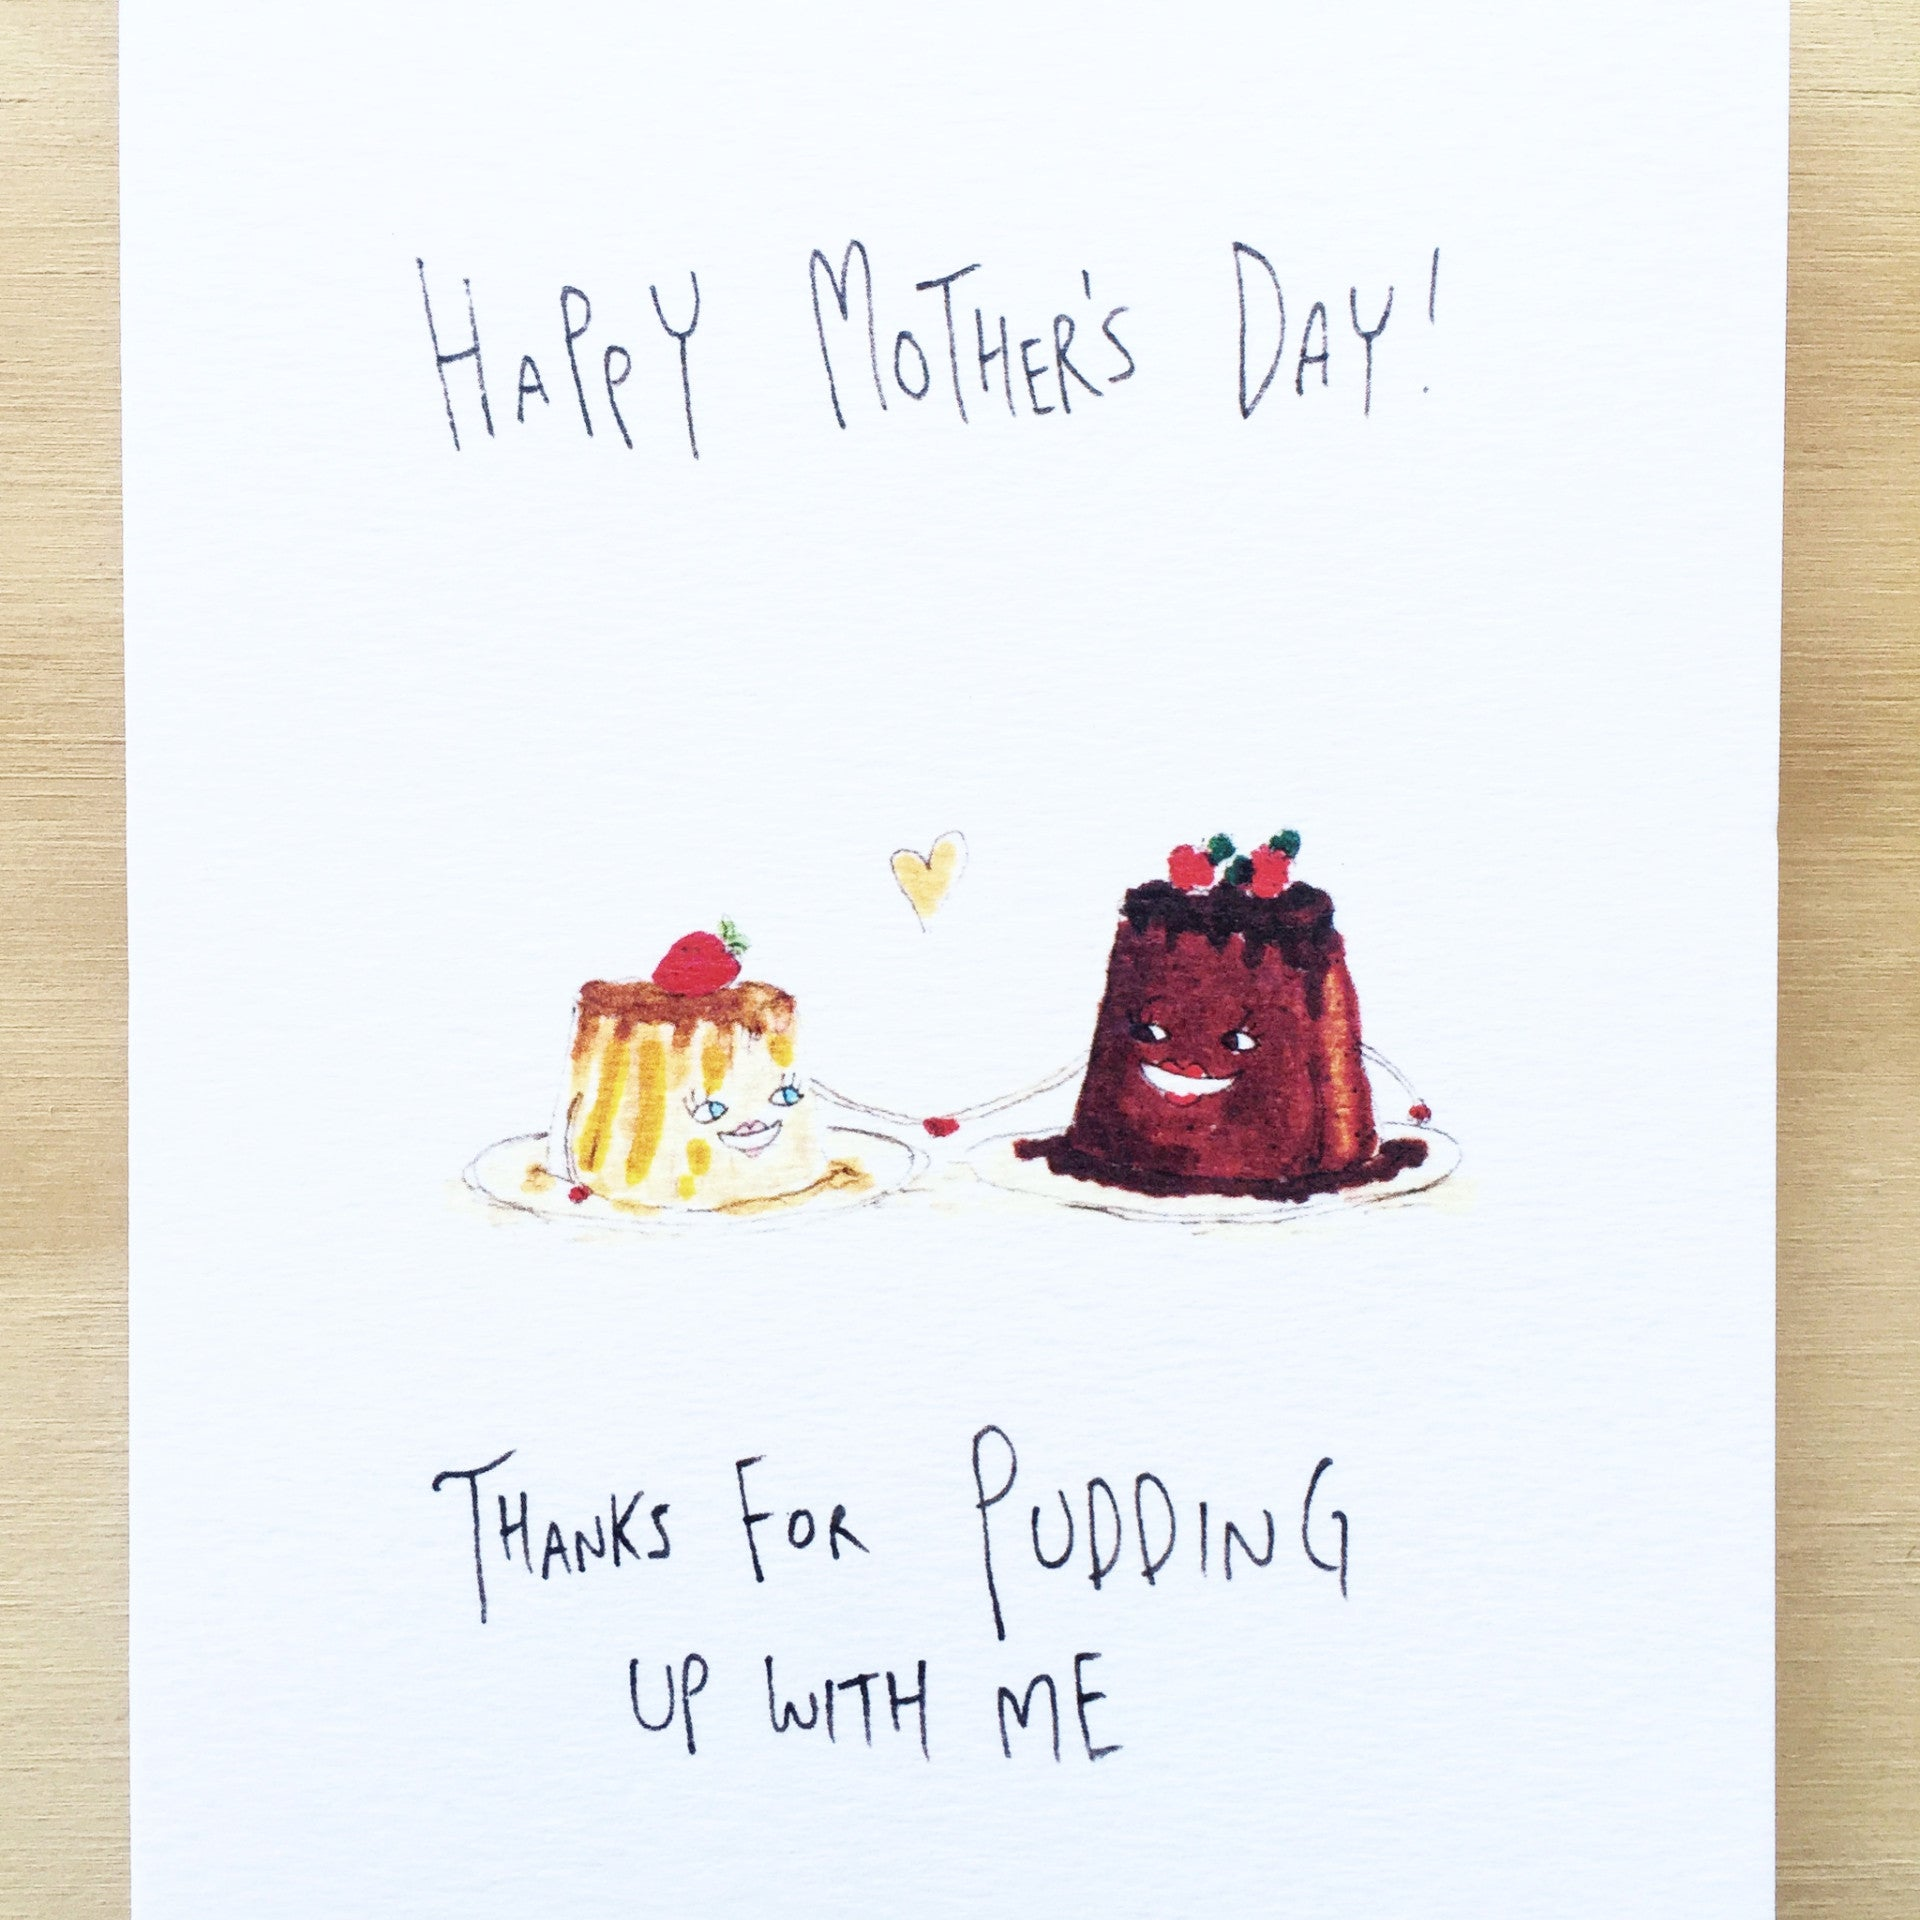 Happy Mother's Day, Thanks For Pudding Up With Me - Well Drawn